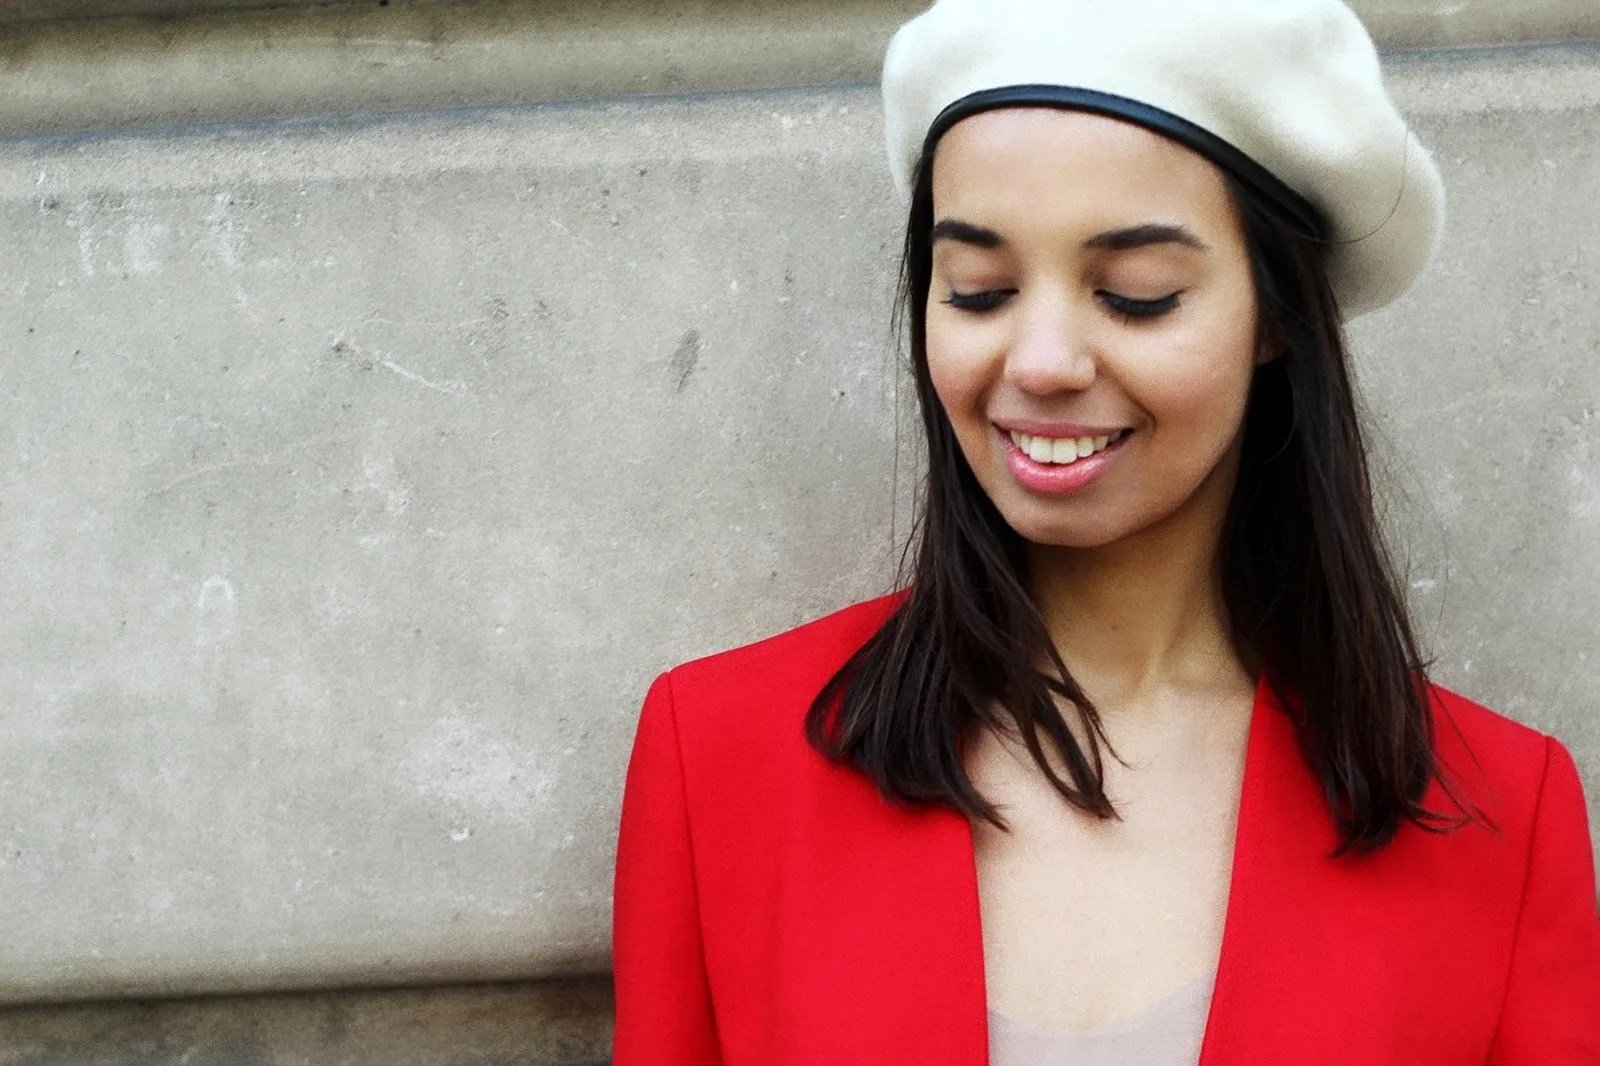 Beret Minimalist Wardrobe - The Style of Laura Jane